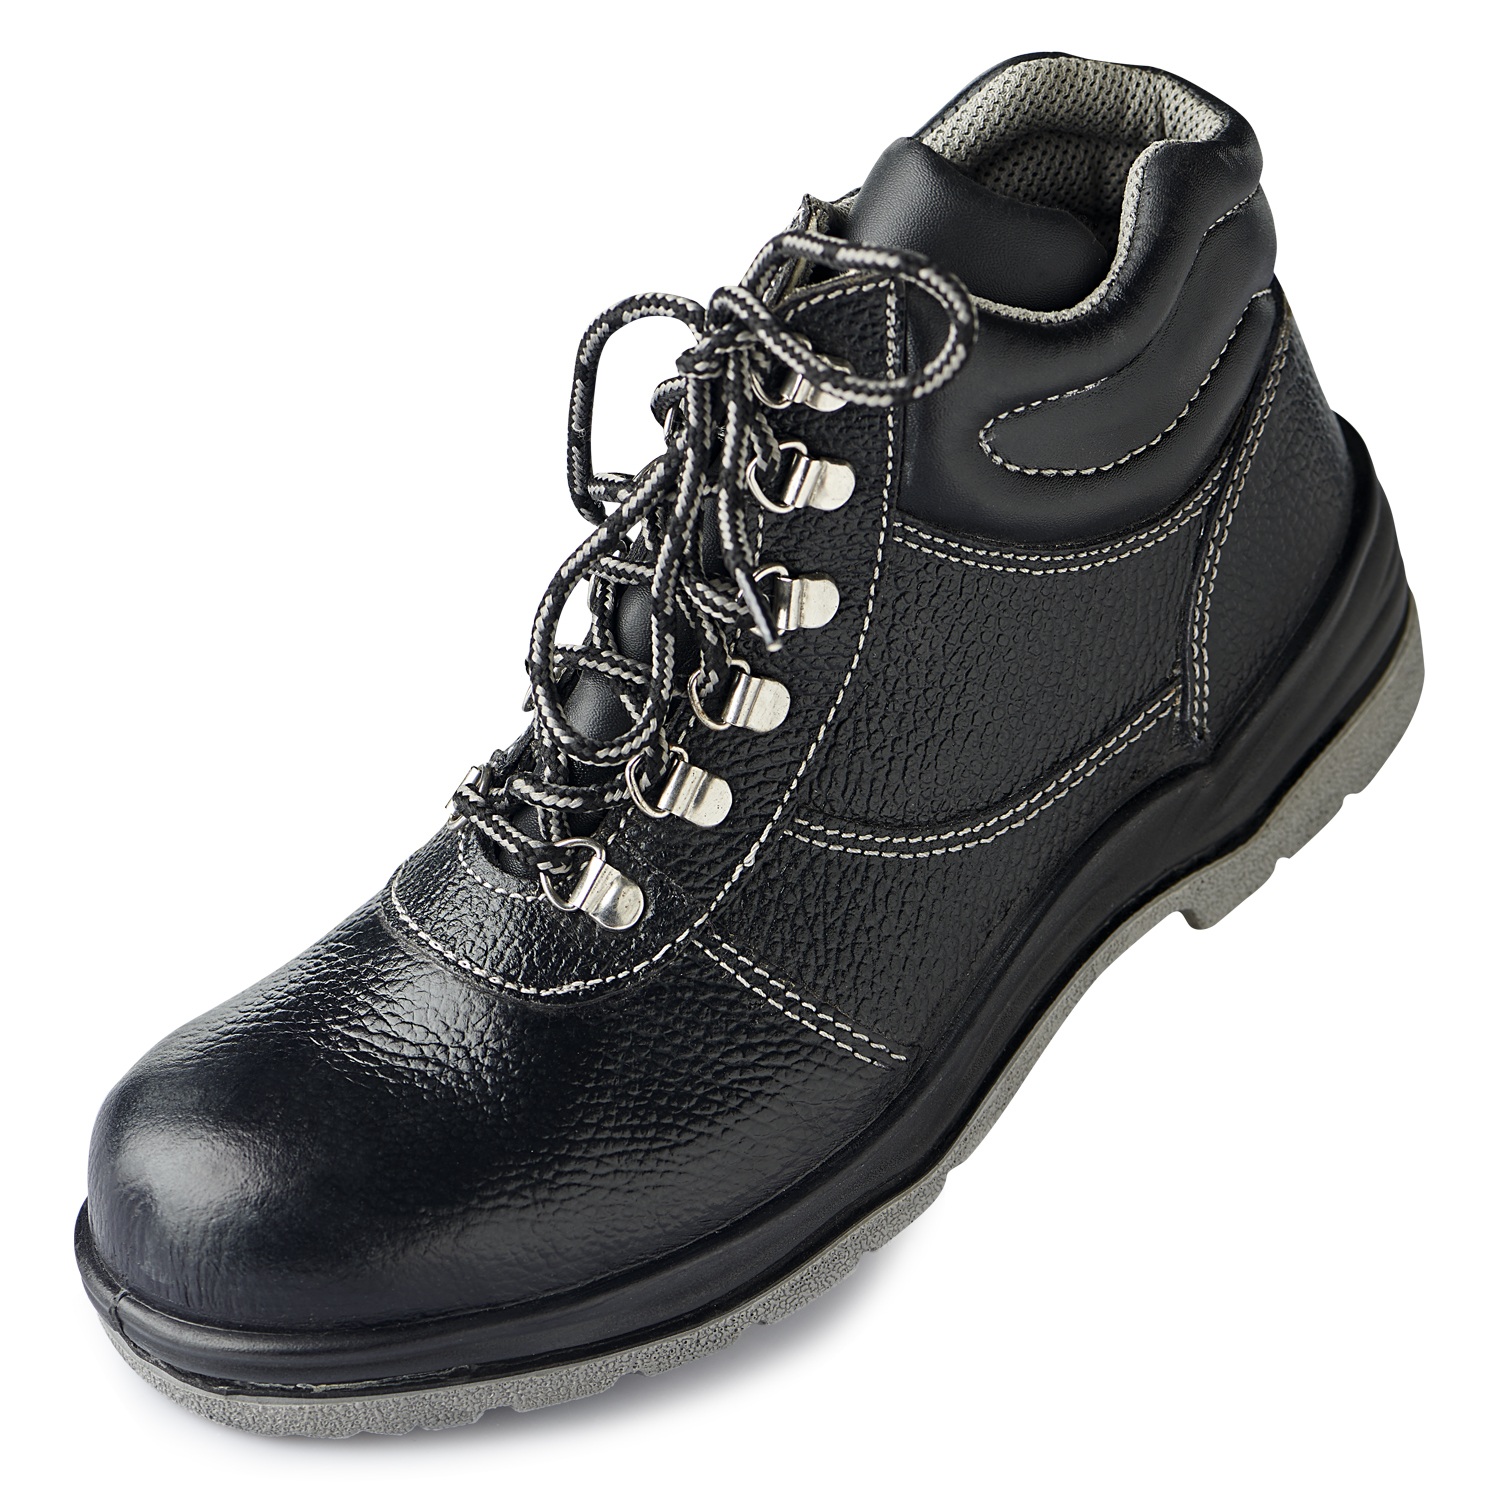 a4b0c999c3e POLO ST PU Safety Shoes Manufacturer